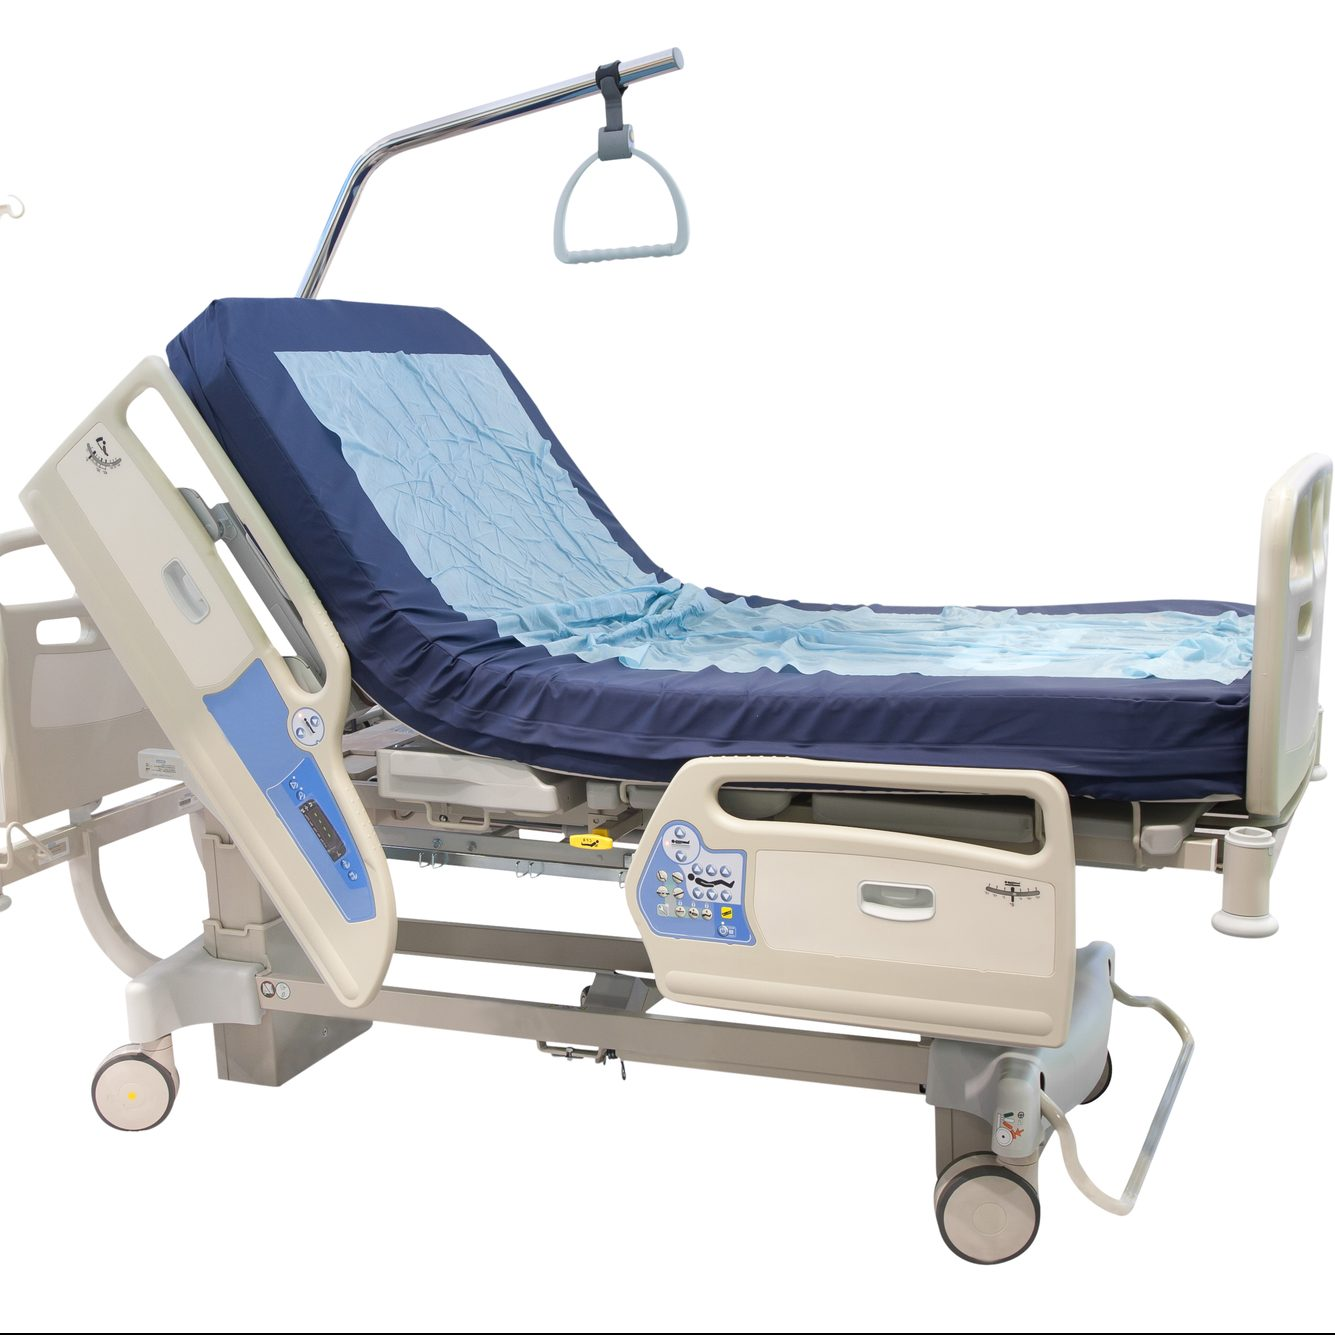 care equipment leading standard signature beds home seers medical bed uk s manufacturer handling couch the